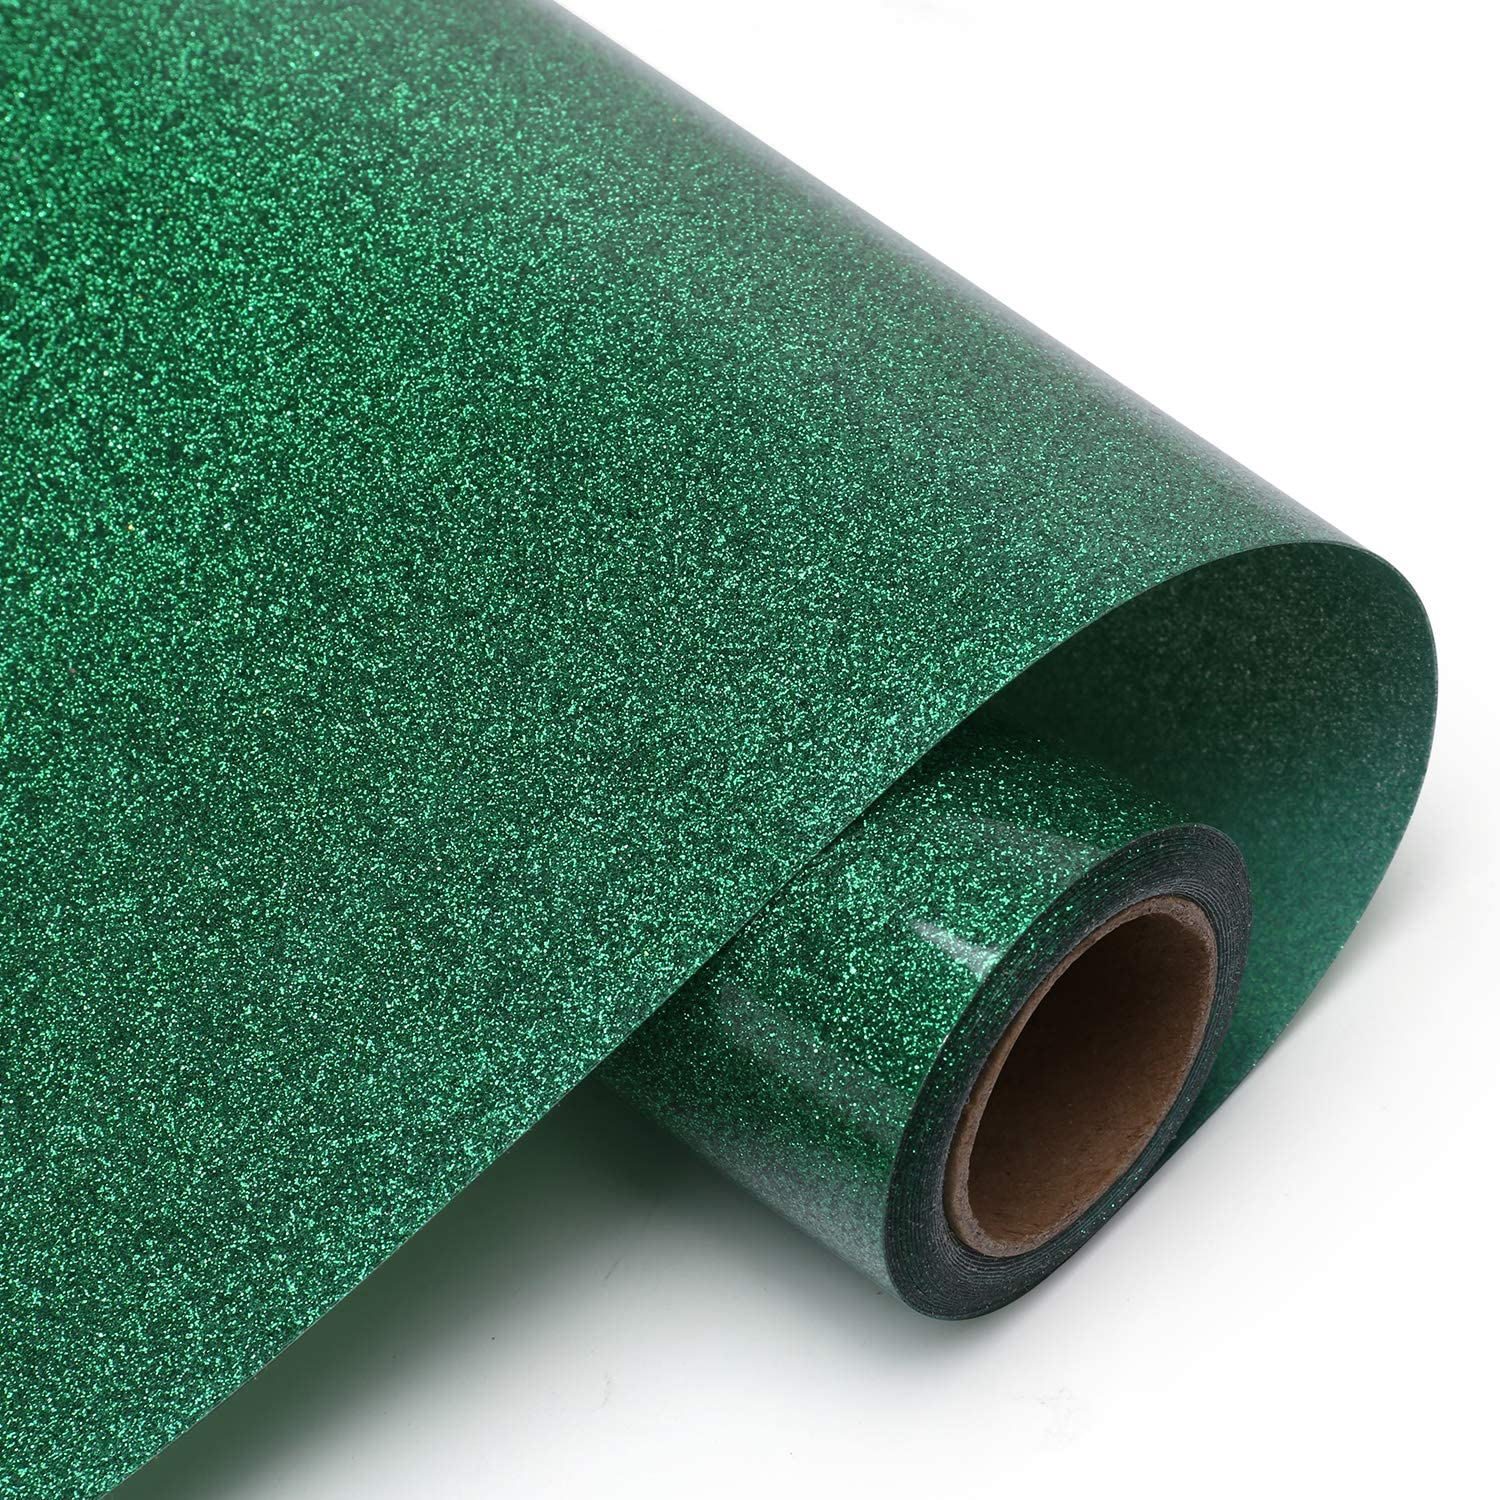 Cootack Glitter HTV Iron on Vinyl PU Heat Transfer Vinyl Easy to Cut & Weed & Heat Press for T-Shirts 10inch x 10feet Green